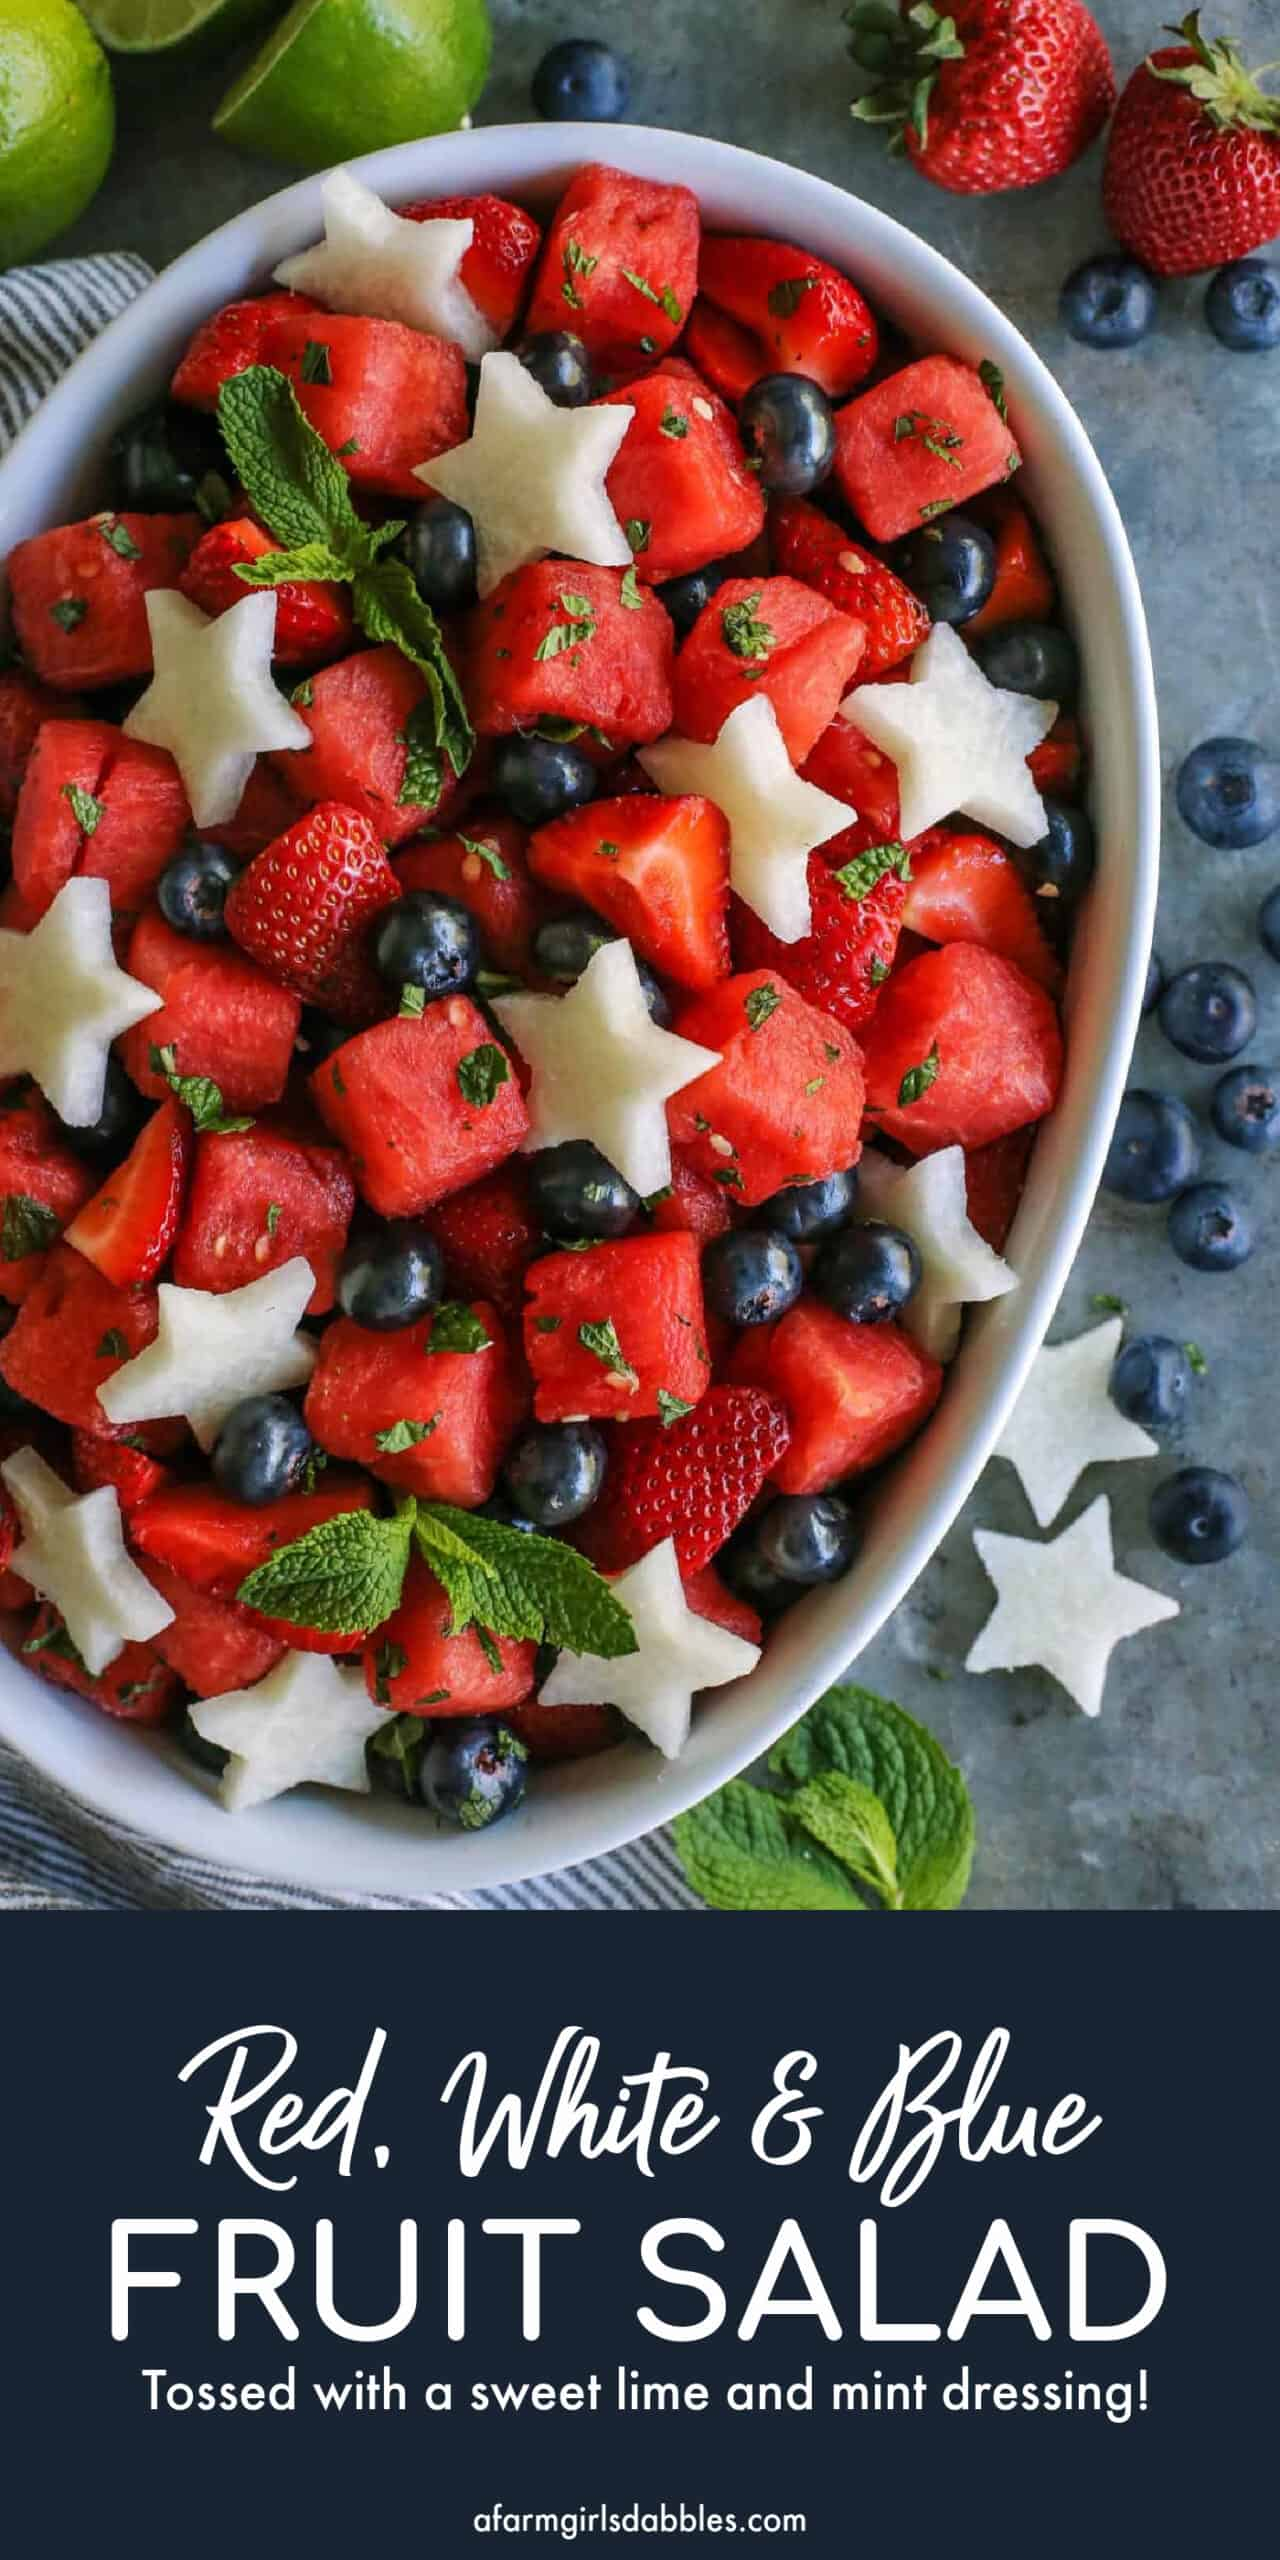 Pinterest image for red, white and blue mojito fruit salad